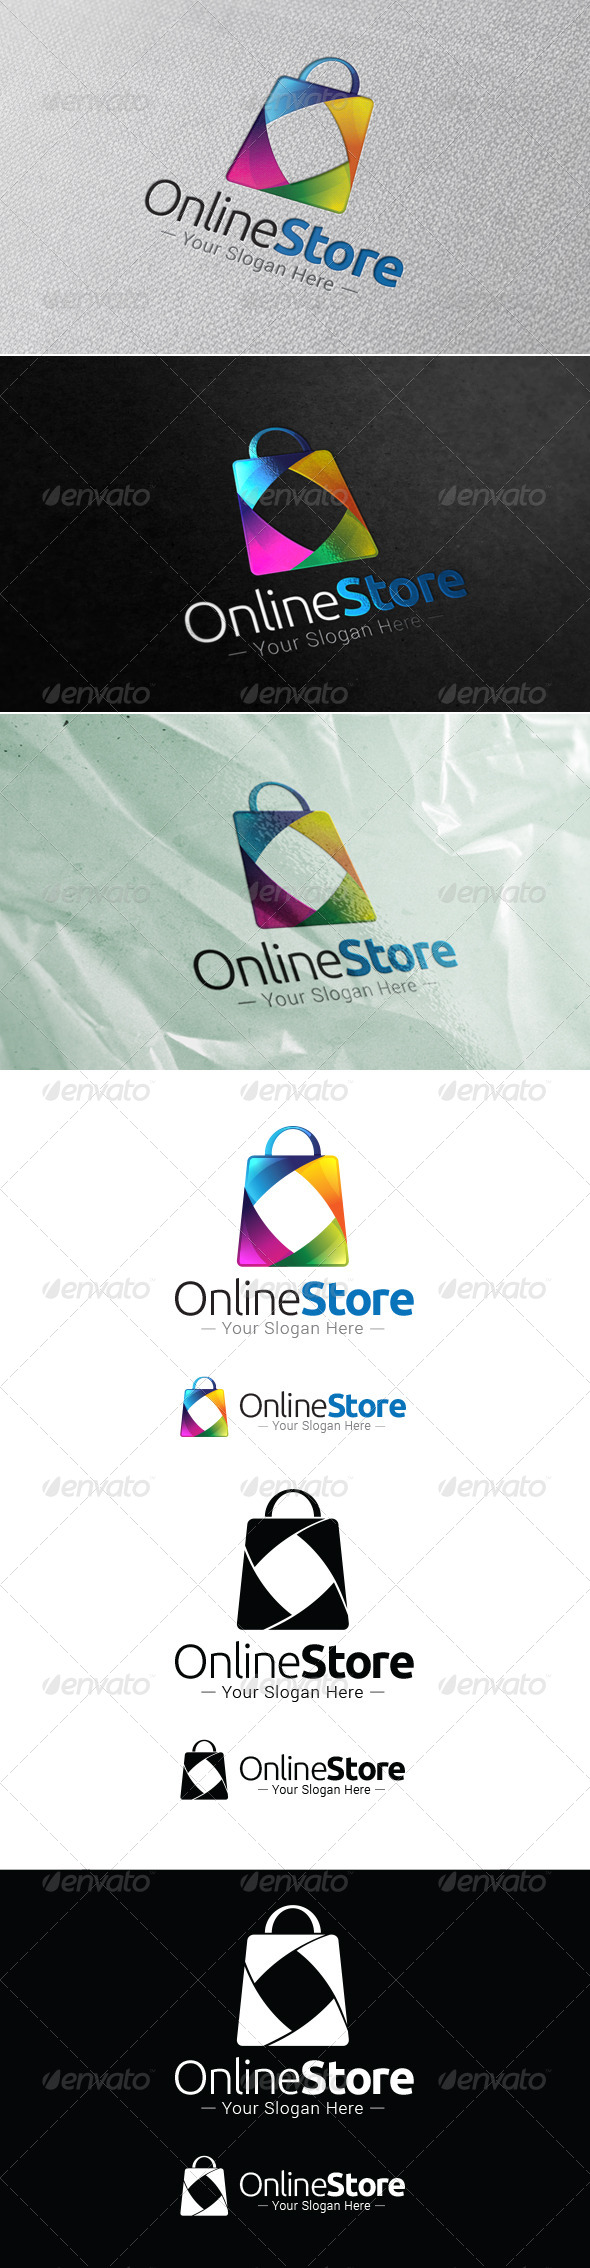 GraphicRiver Online Store Logo Template 7704899